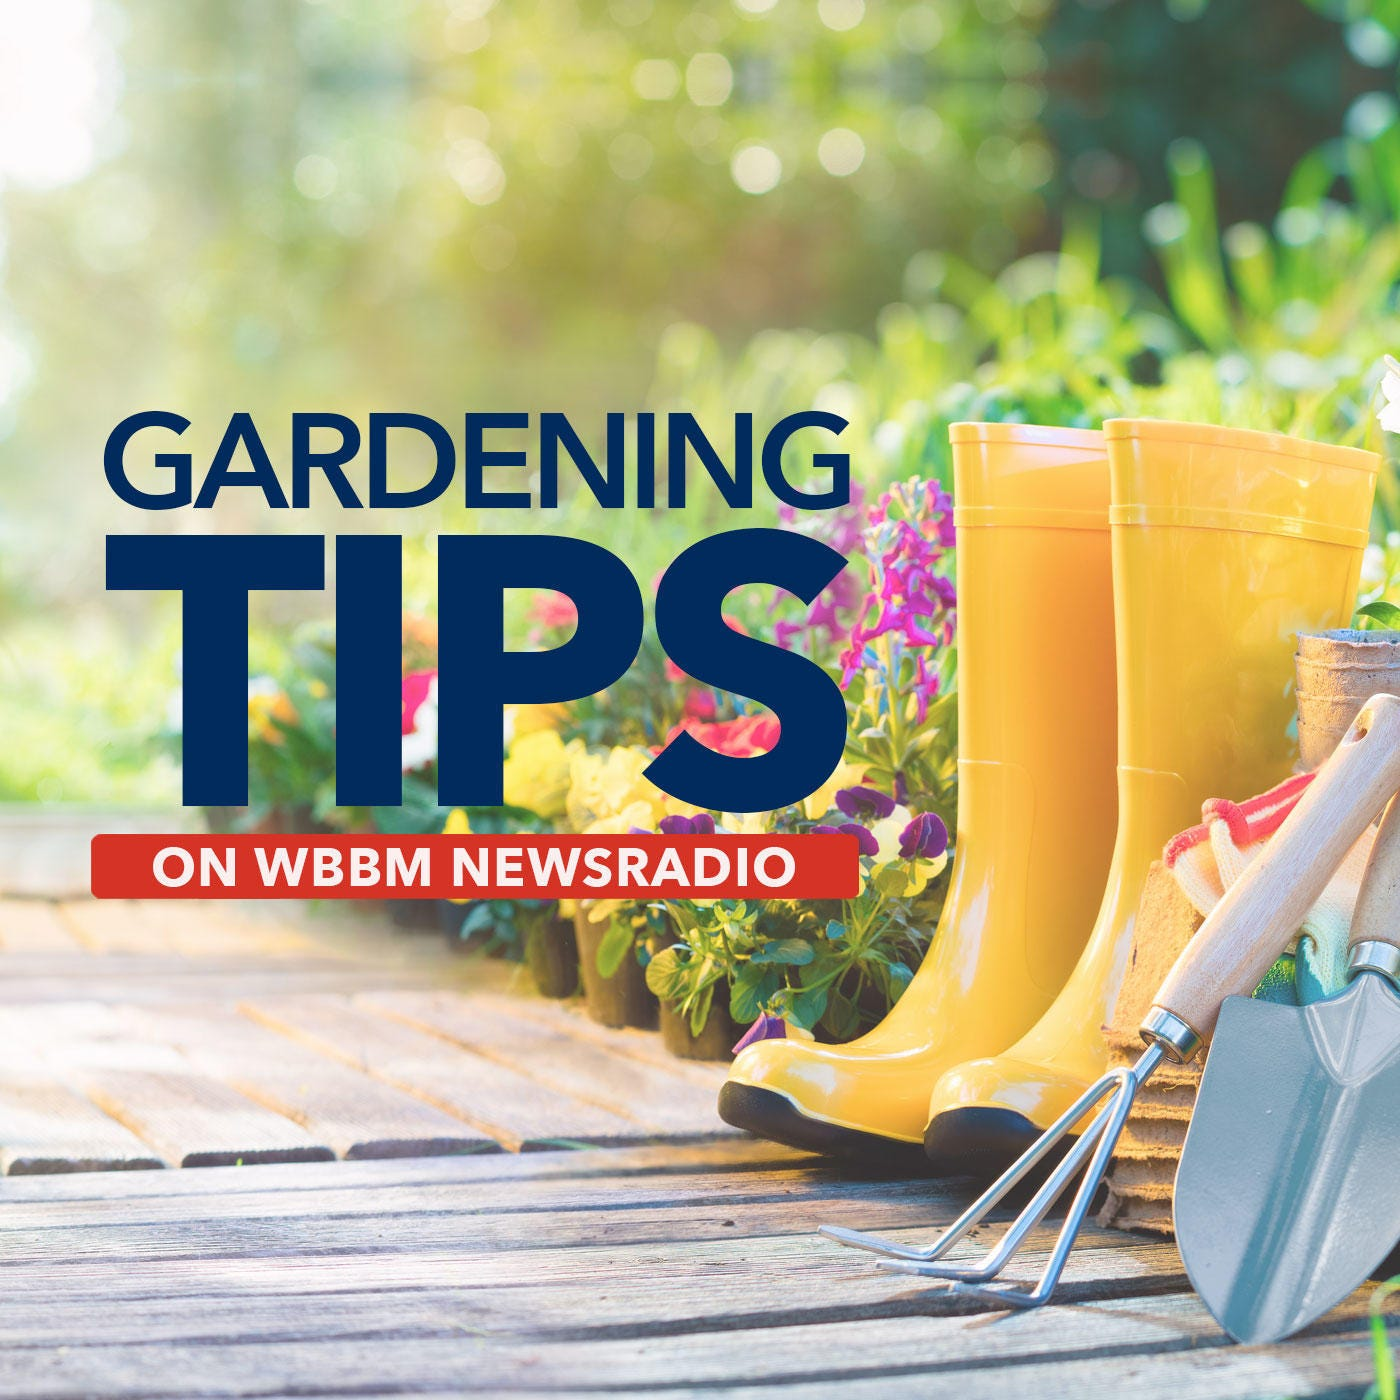 Gardening Tips on WBBM Newsradio